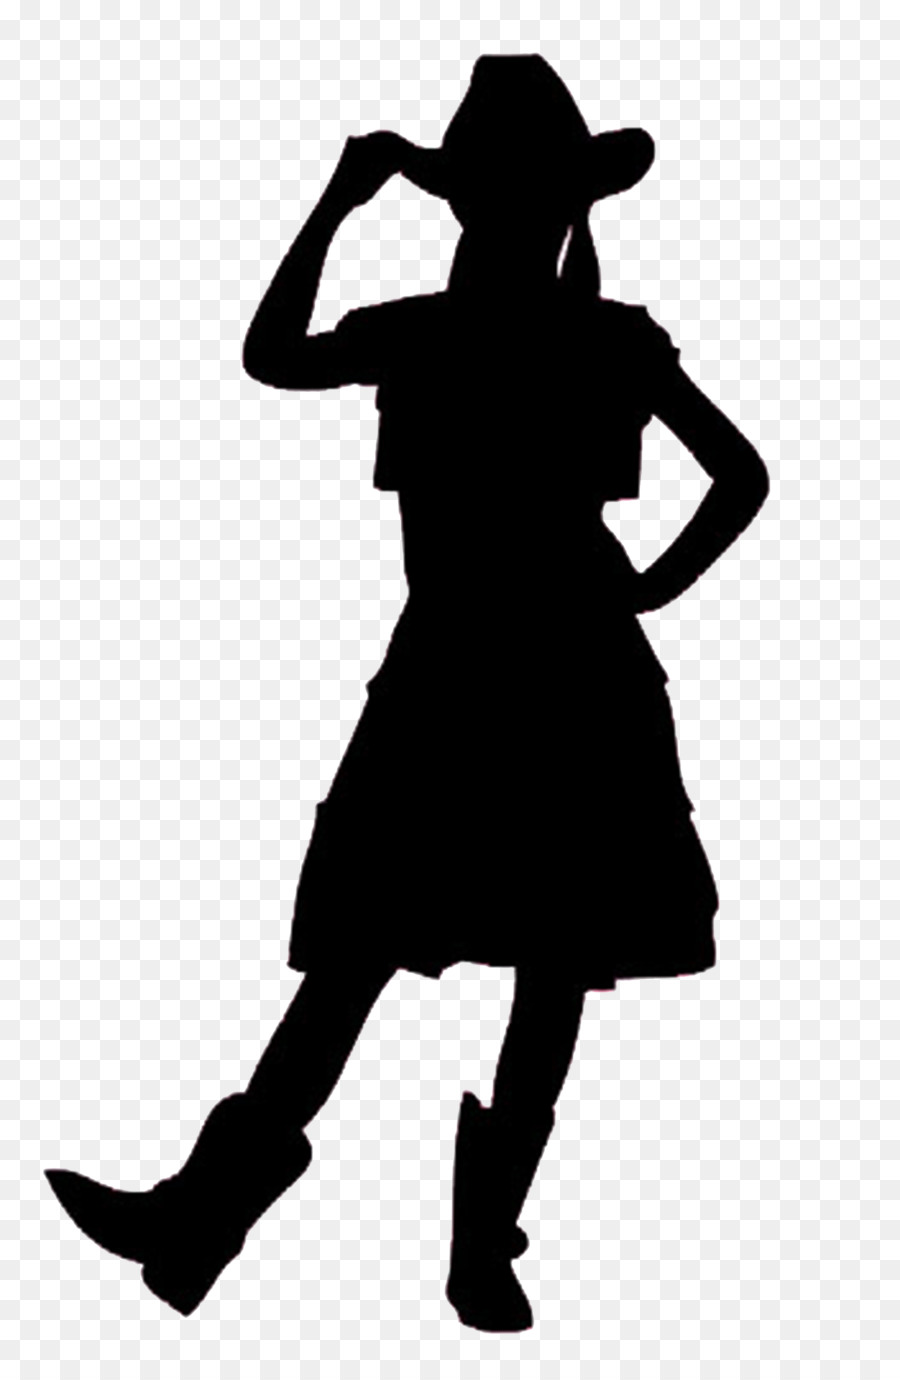 Download Free png Silhouette Cowboy Woman on top Clip art cowgirl.